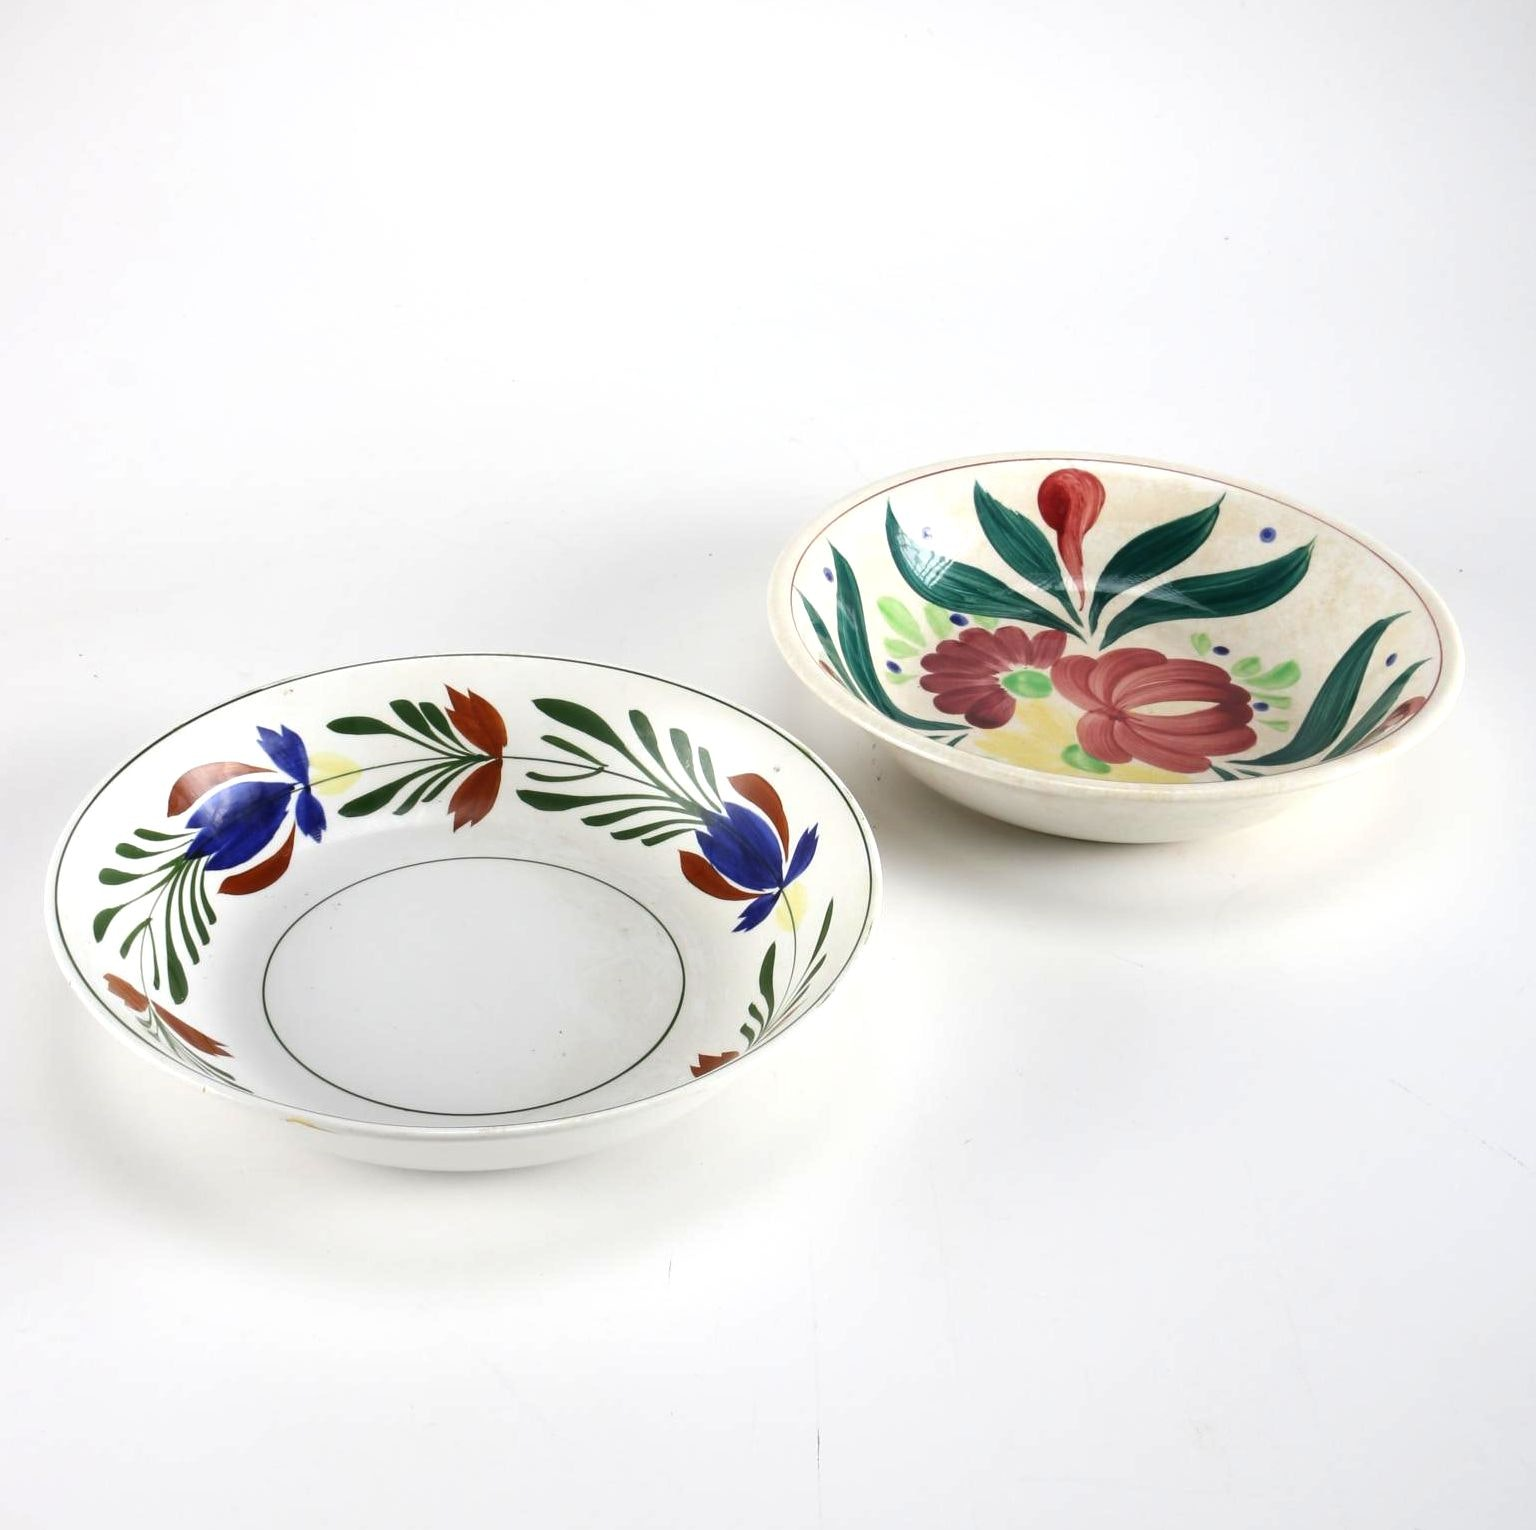 Pair of Hand-Painted Ironstone Ware Bowls